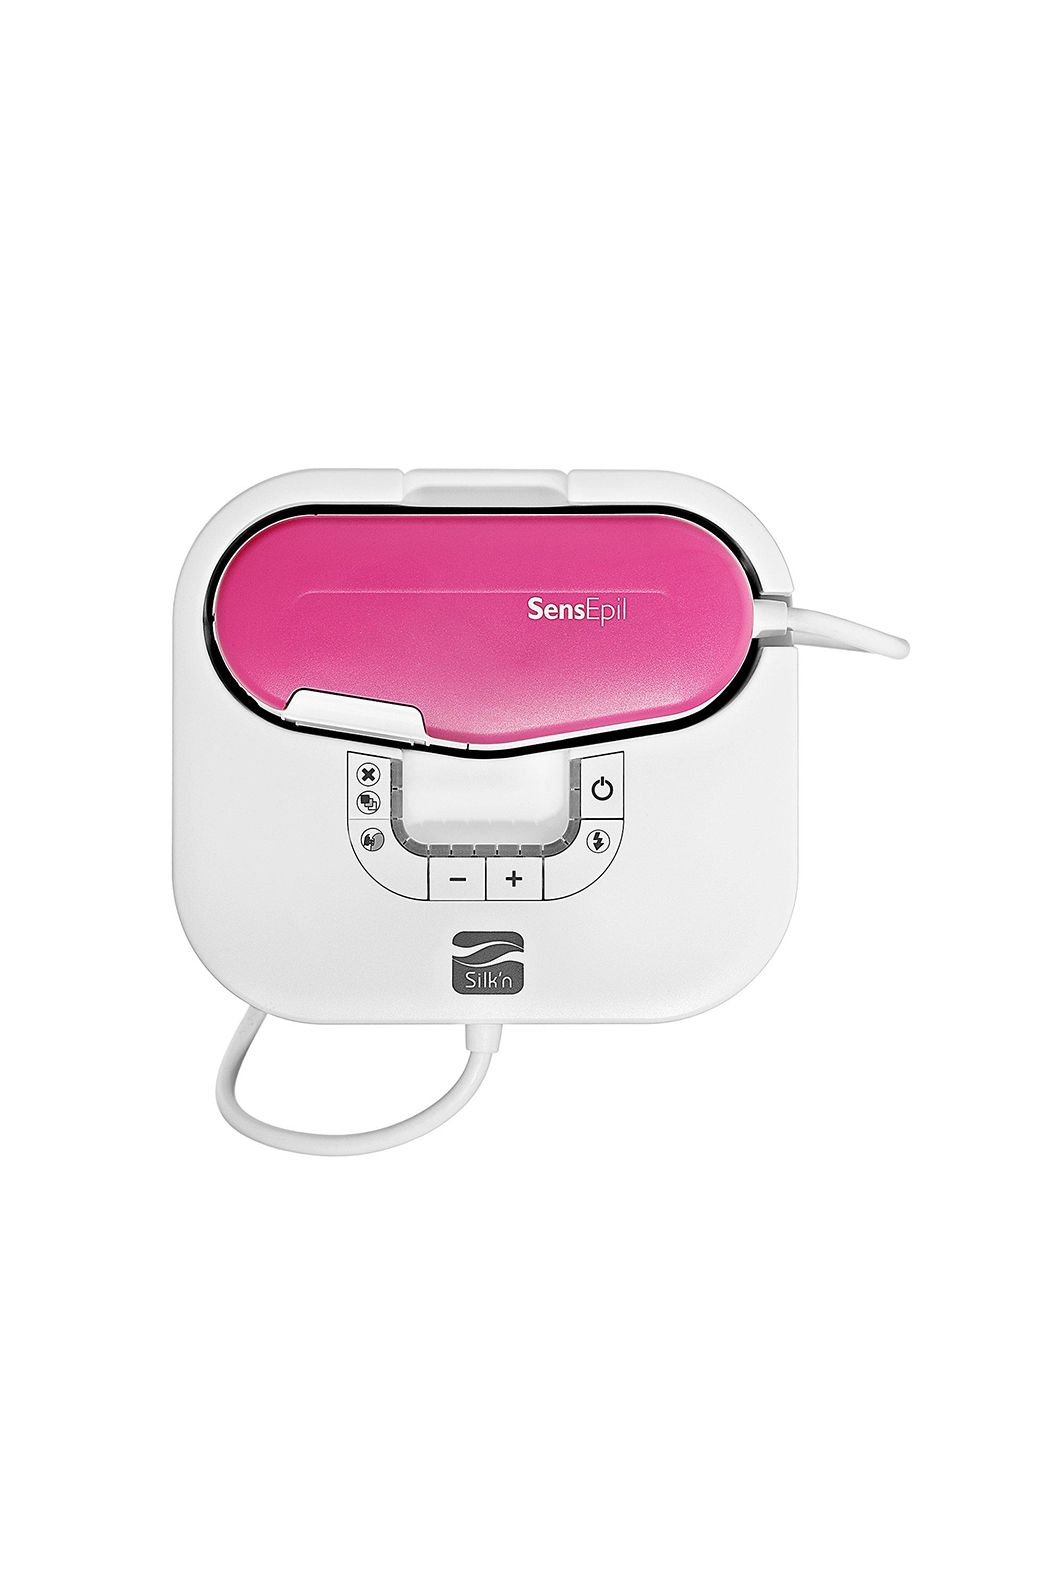 "<p>Lasers are an expensive and tricky territory, but at-home options can save you from regular trips to a laser hair removal specialist. SensEpil's FDA-approved technology was designed to be as painless as possible, with a hand-held device that allows you to control exactly which areas you want to treat.</p><p><strong>Silk'n SensEpil Hair Removal Device, $199; <a href=""https://www.silkn.com/buy-sensepil/?avad=113005_fbe4f723"" target=""_blank"">silkn.com</a>. </strong></p>"